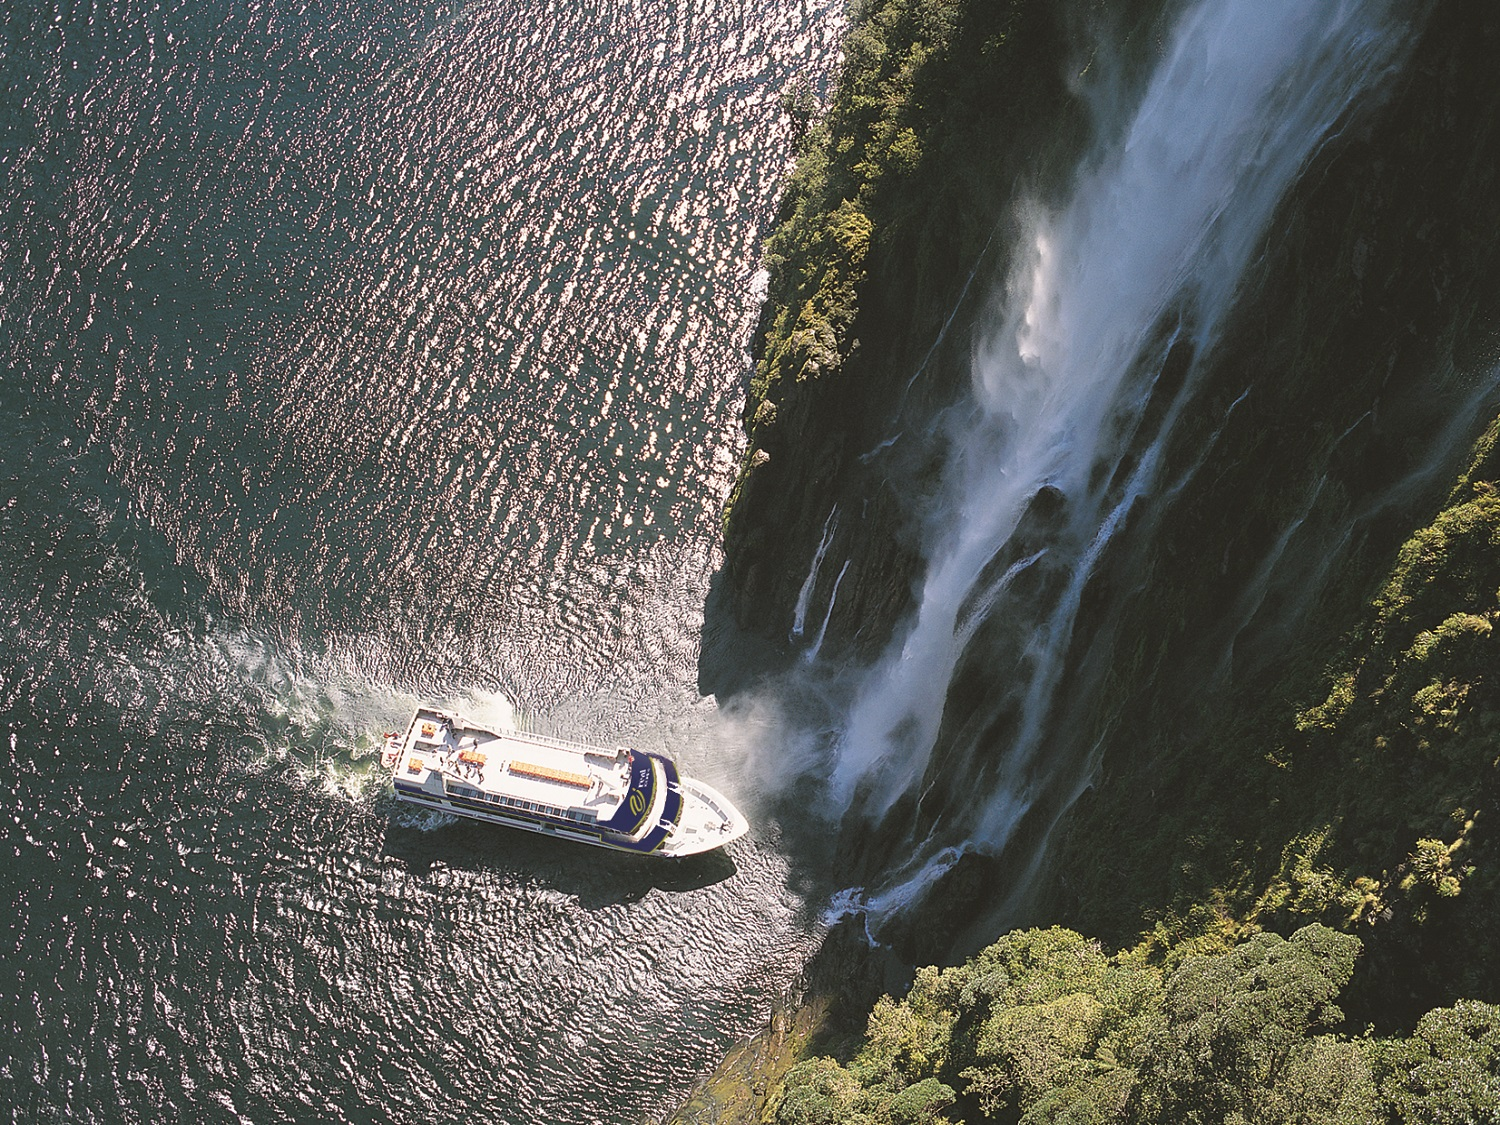 A day trip boat points its bow into Stirling Falls.